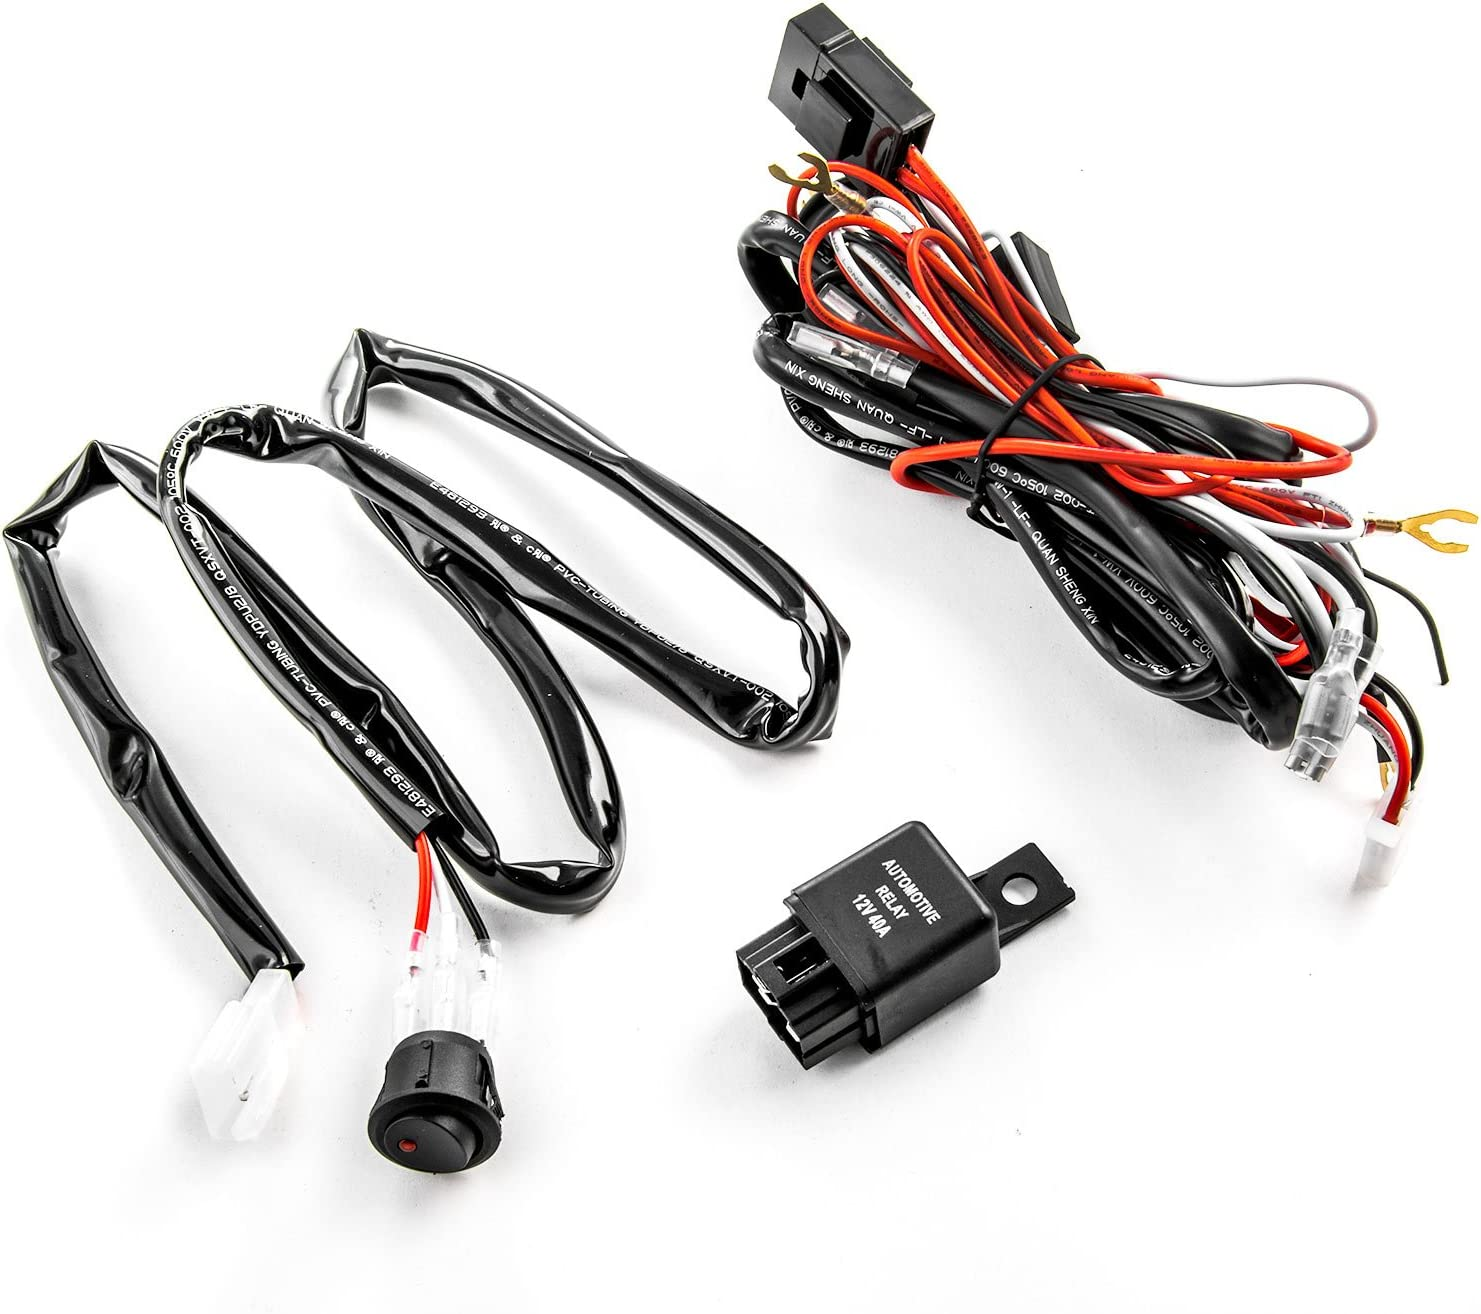 off road auxiliary lights harness wiring diagram off road wiring harness off road auxiliary lights harness #1